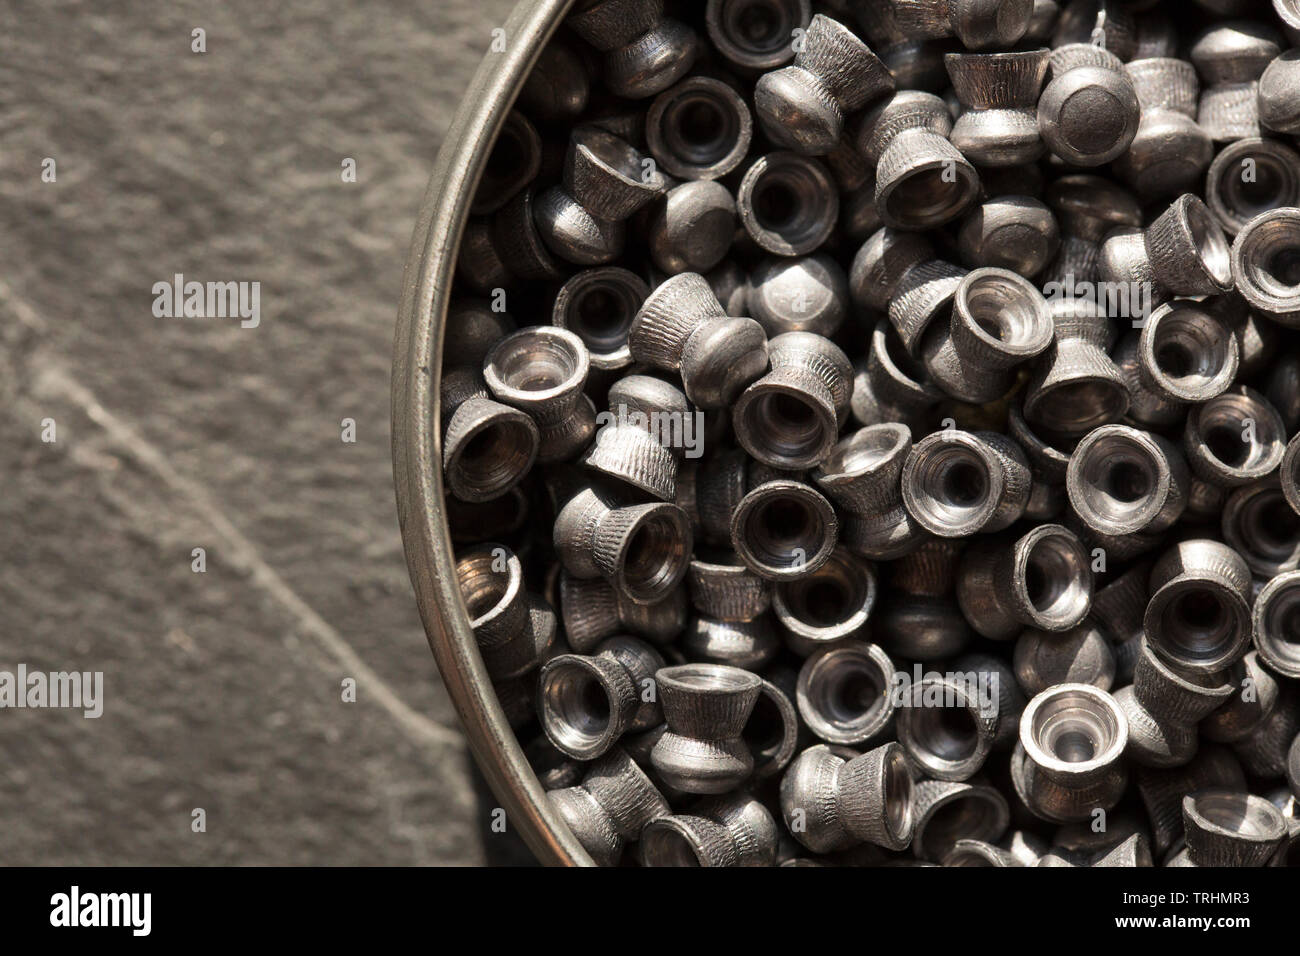 A tin of lead .22 calibre airgun pellets on a dark stone background that can be used in either airguns or air pistols. England UK GB - Stock Image